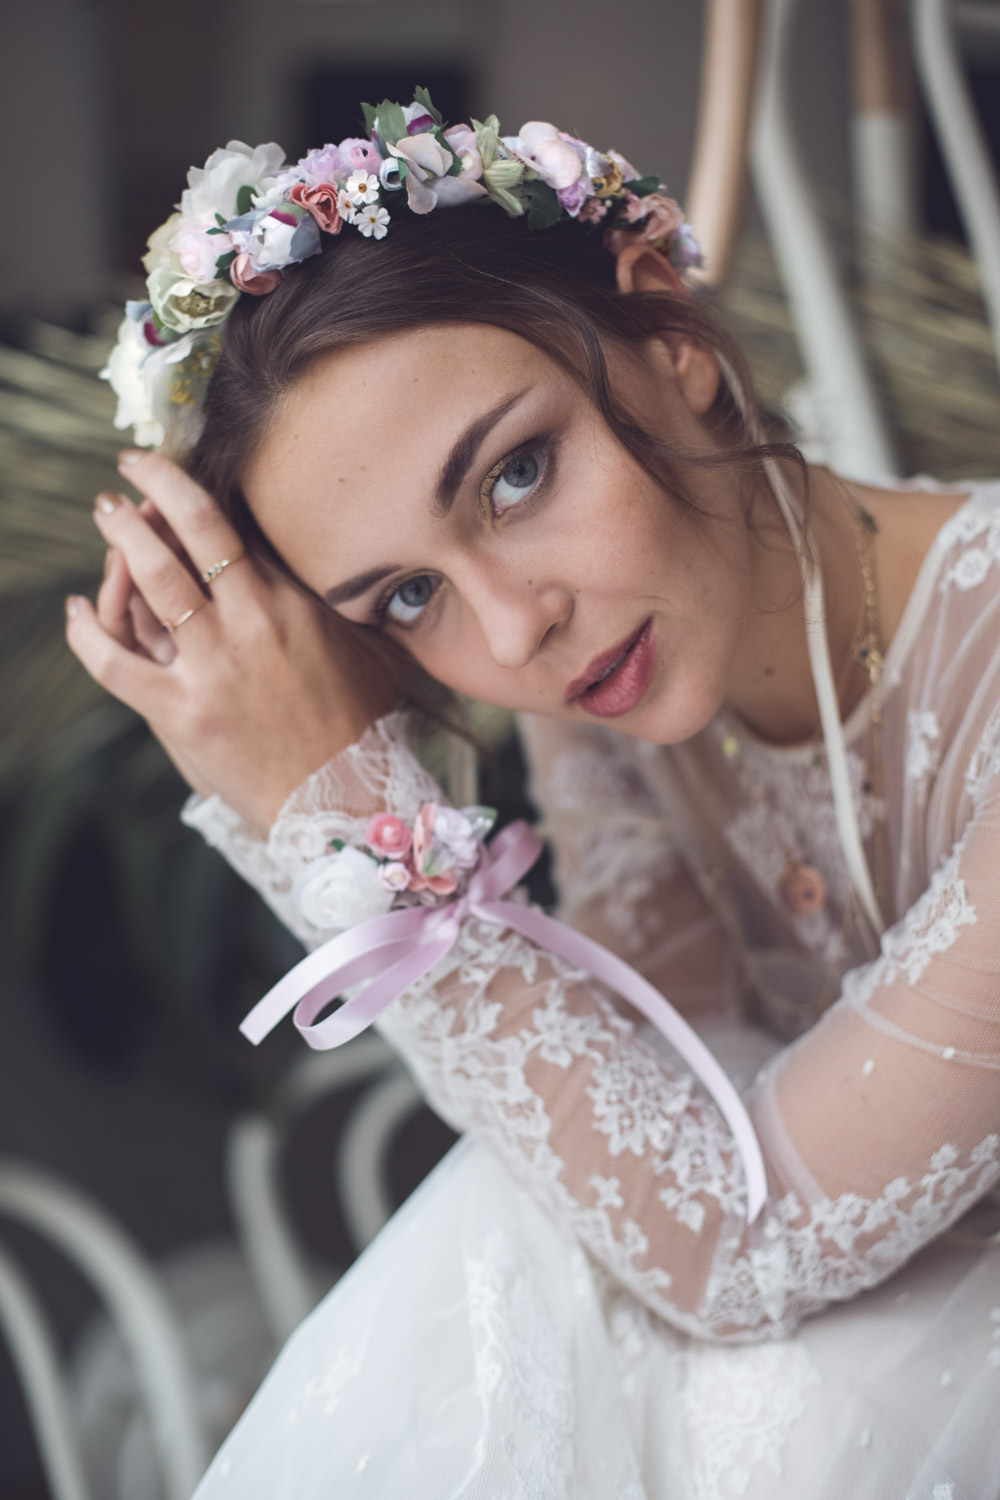 We-Are-Flowergirls_Wedding-Shooting_Crown_Amilia.jpg